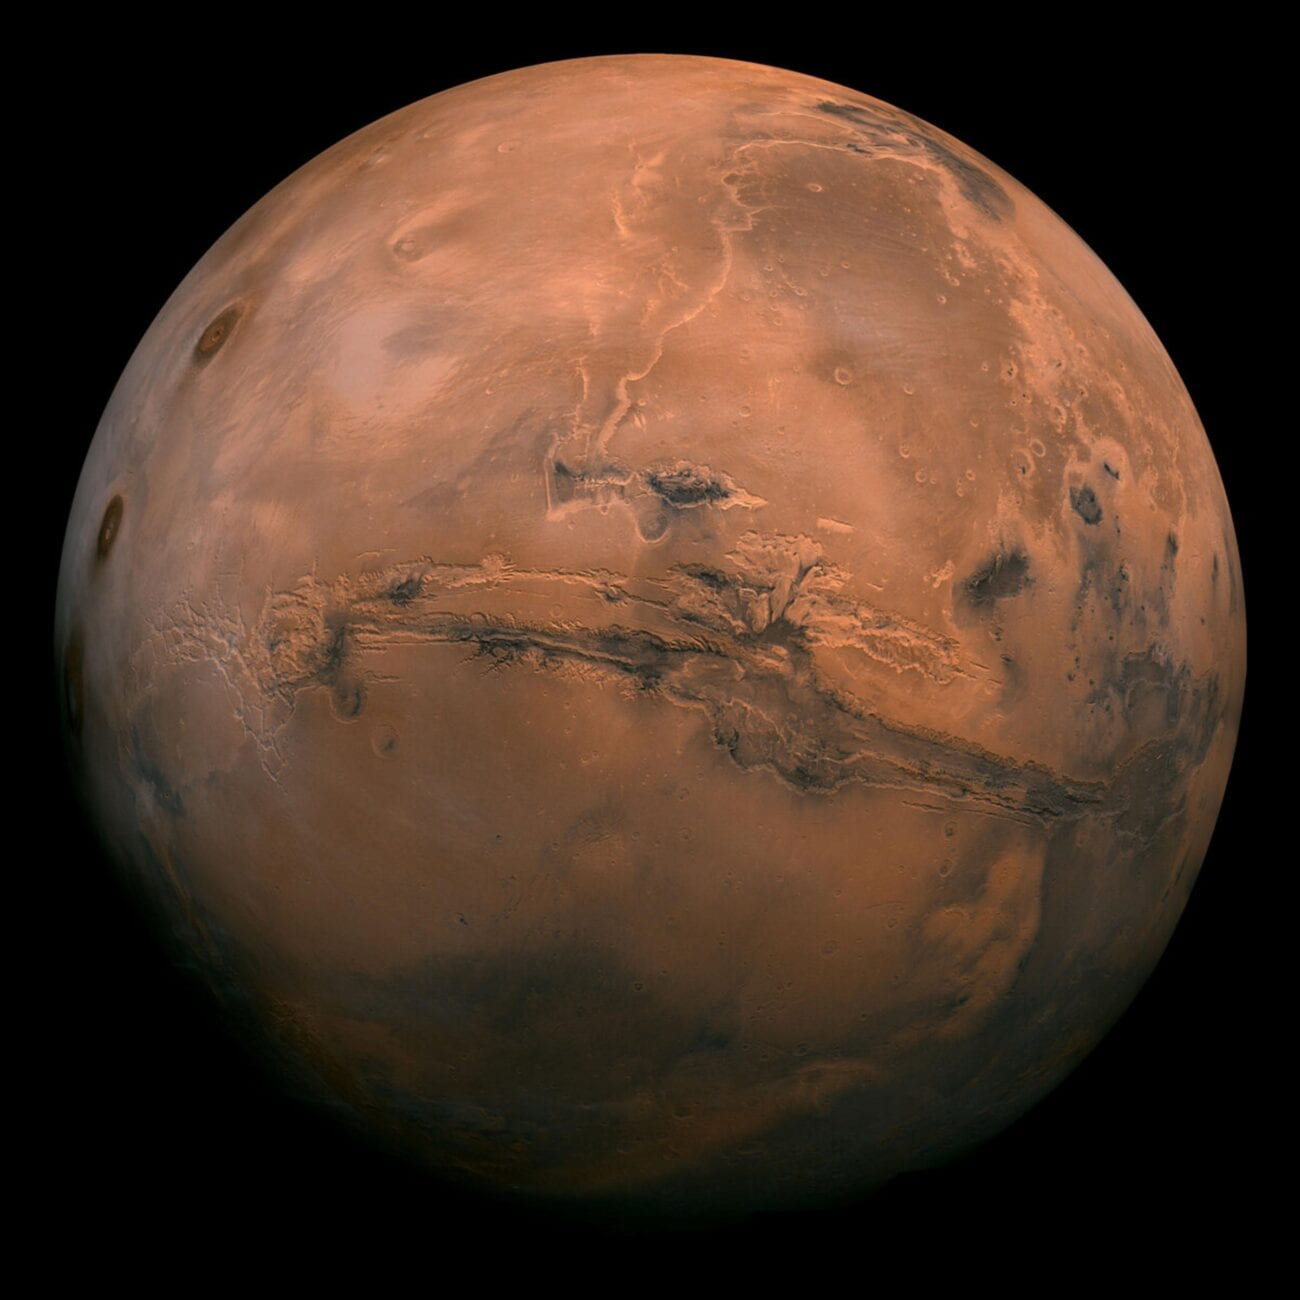 People always joke about moving to Mars, but what if it wasn't too much of a stretch? Scientists are weighing in and here's the latest space news.